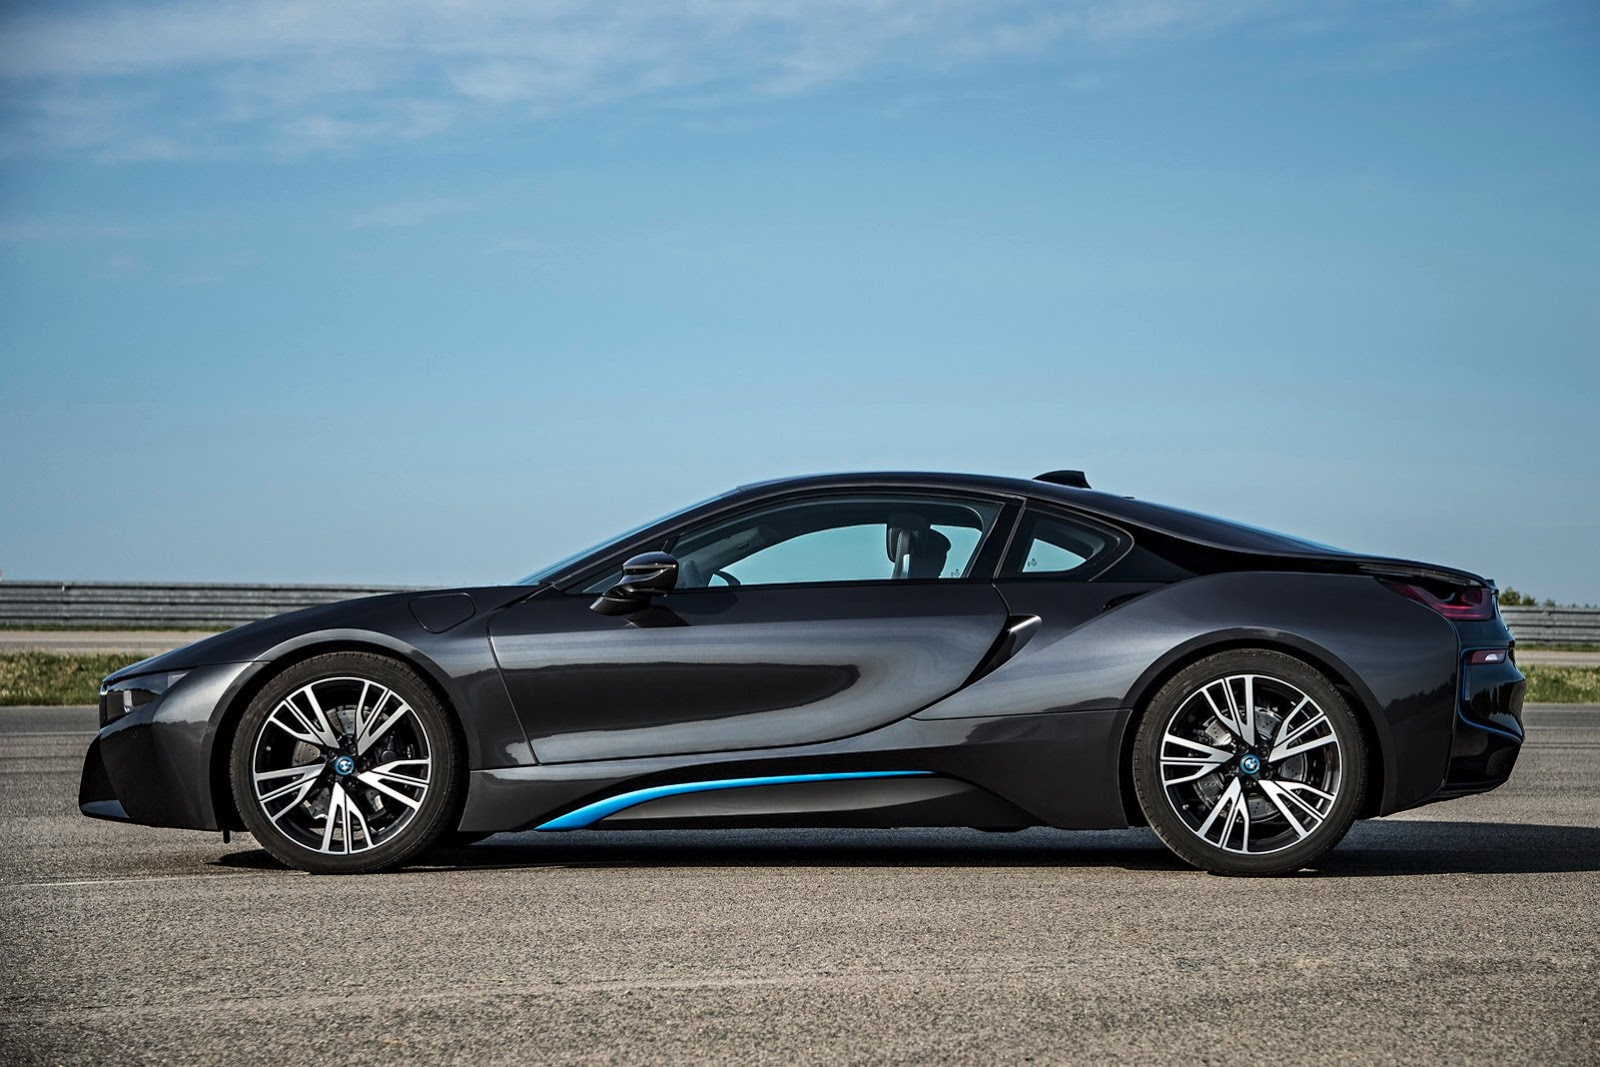 Bmw I8 Plug In Hybrid Sports Car Pictures And Details Video